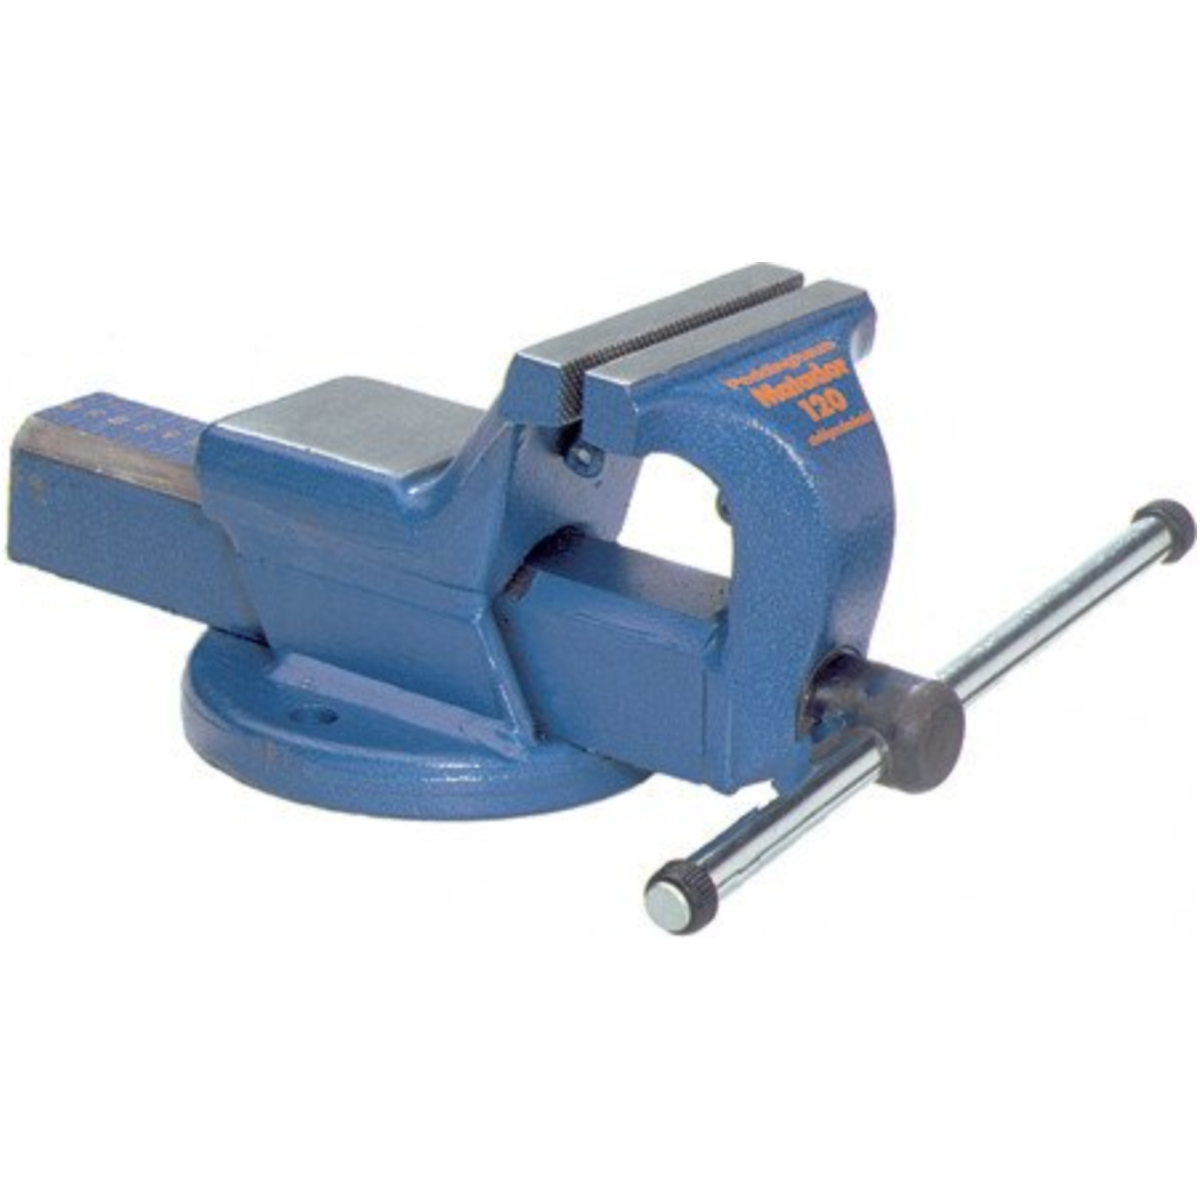 Bench Vice 140mm